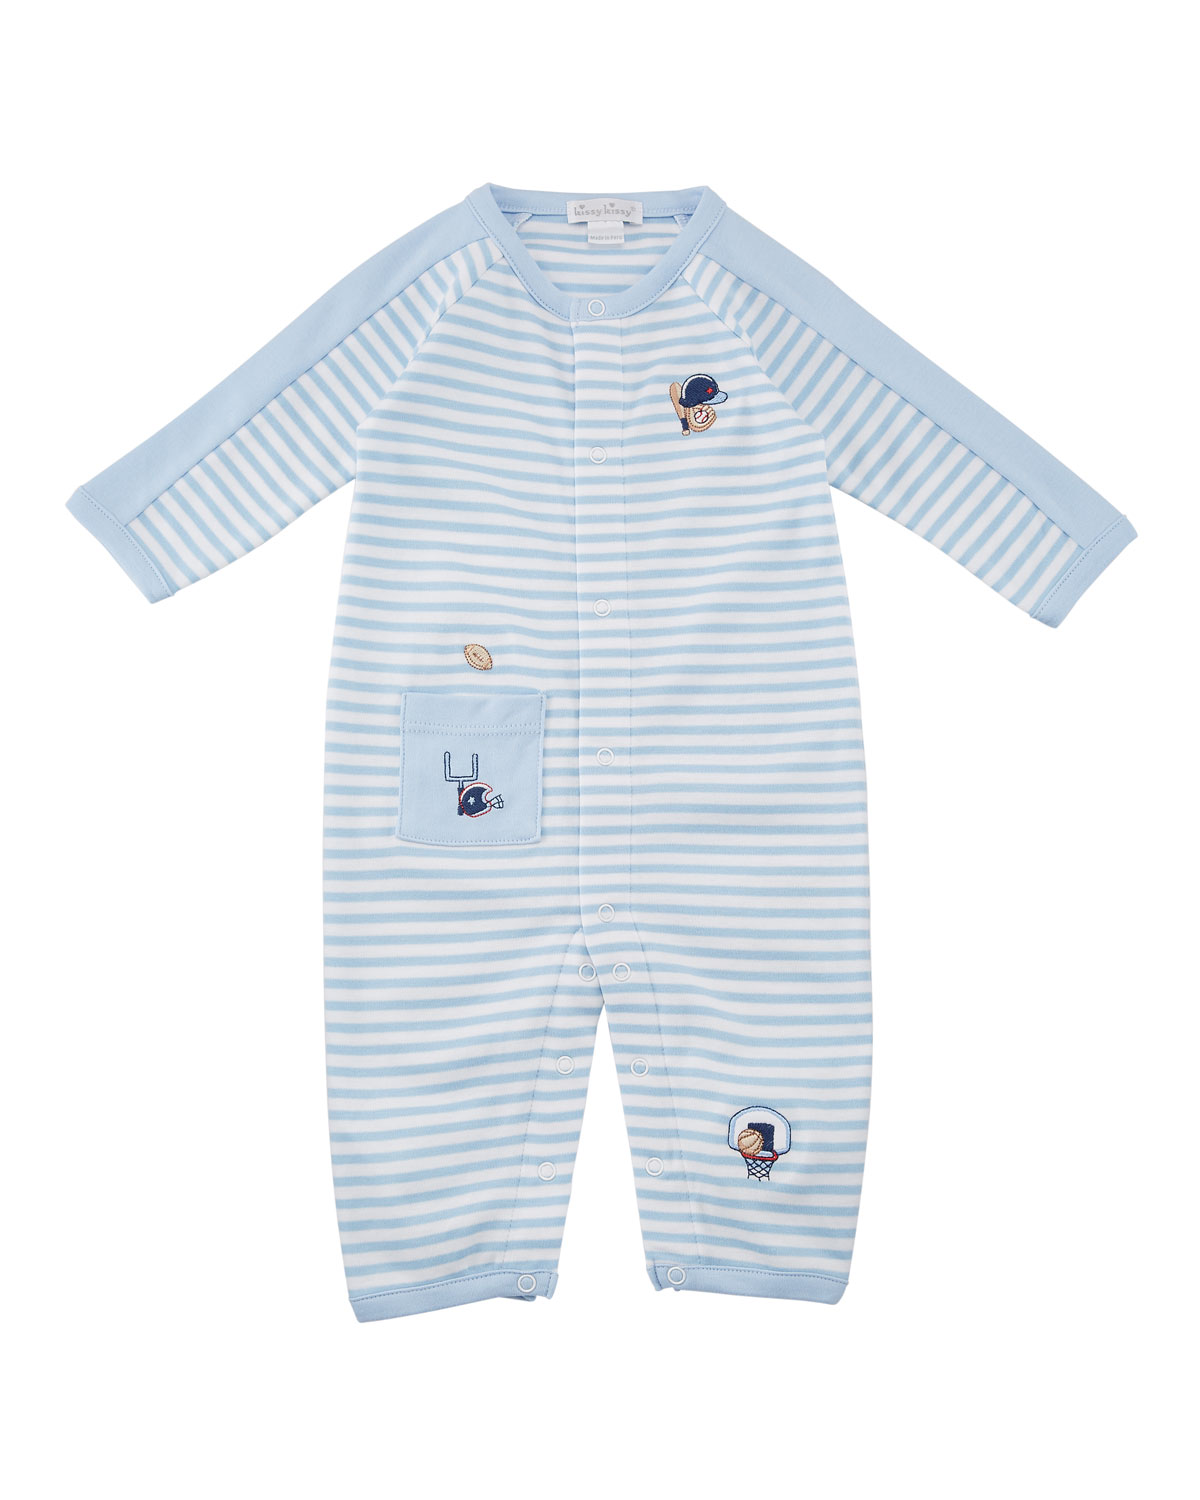 Fall Sports Striped Embroidered Coverall, Size 3-24 Months